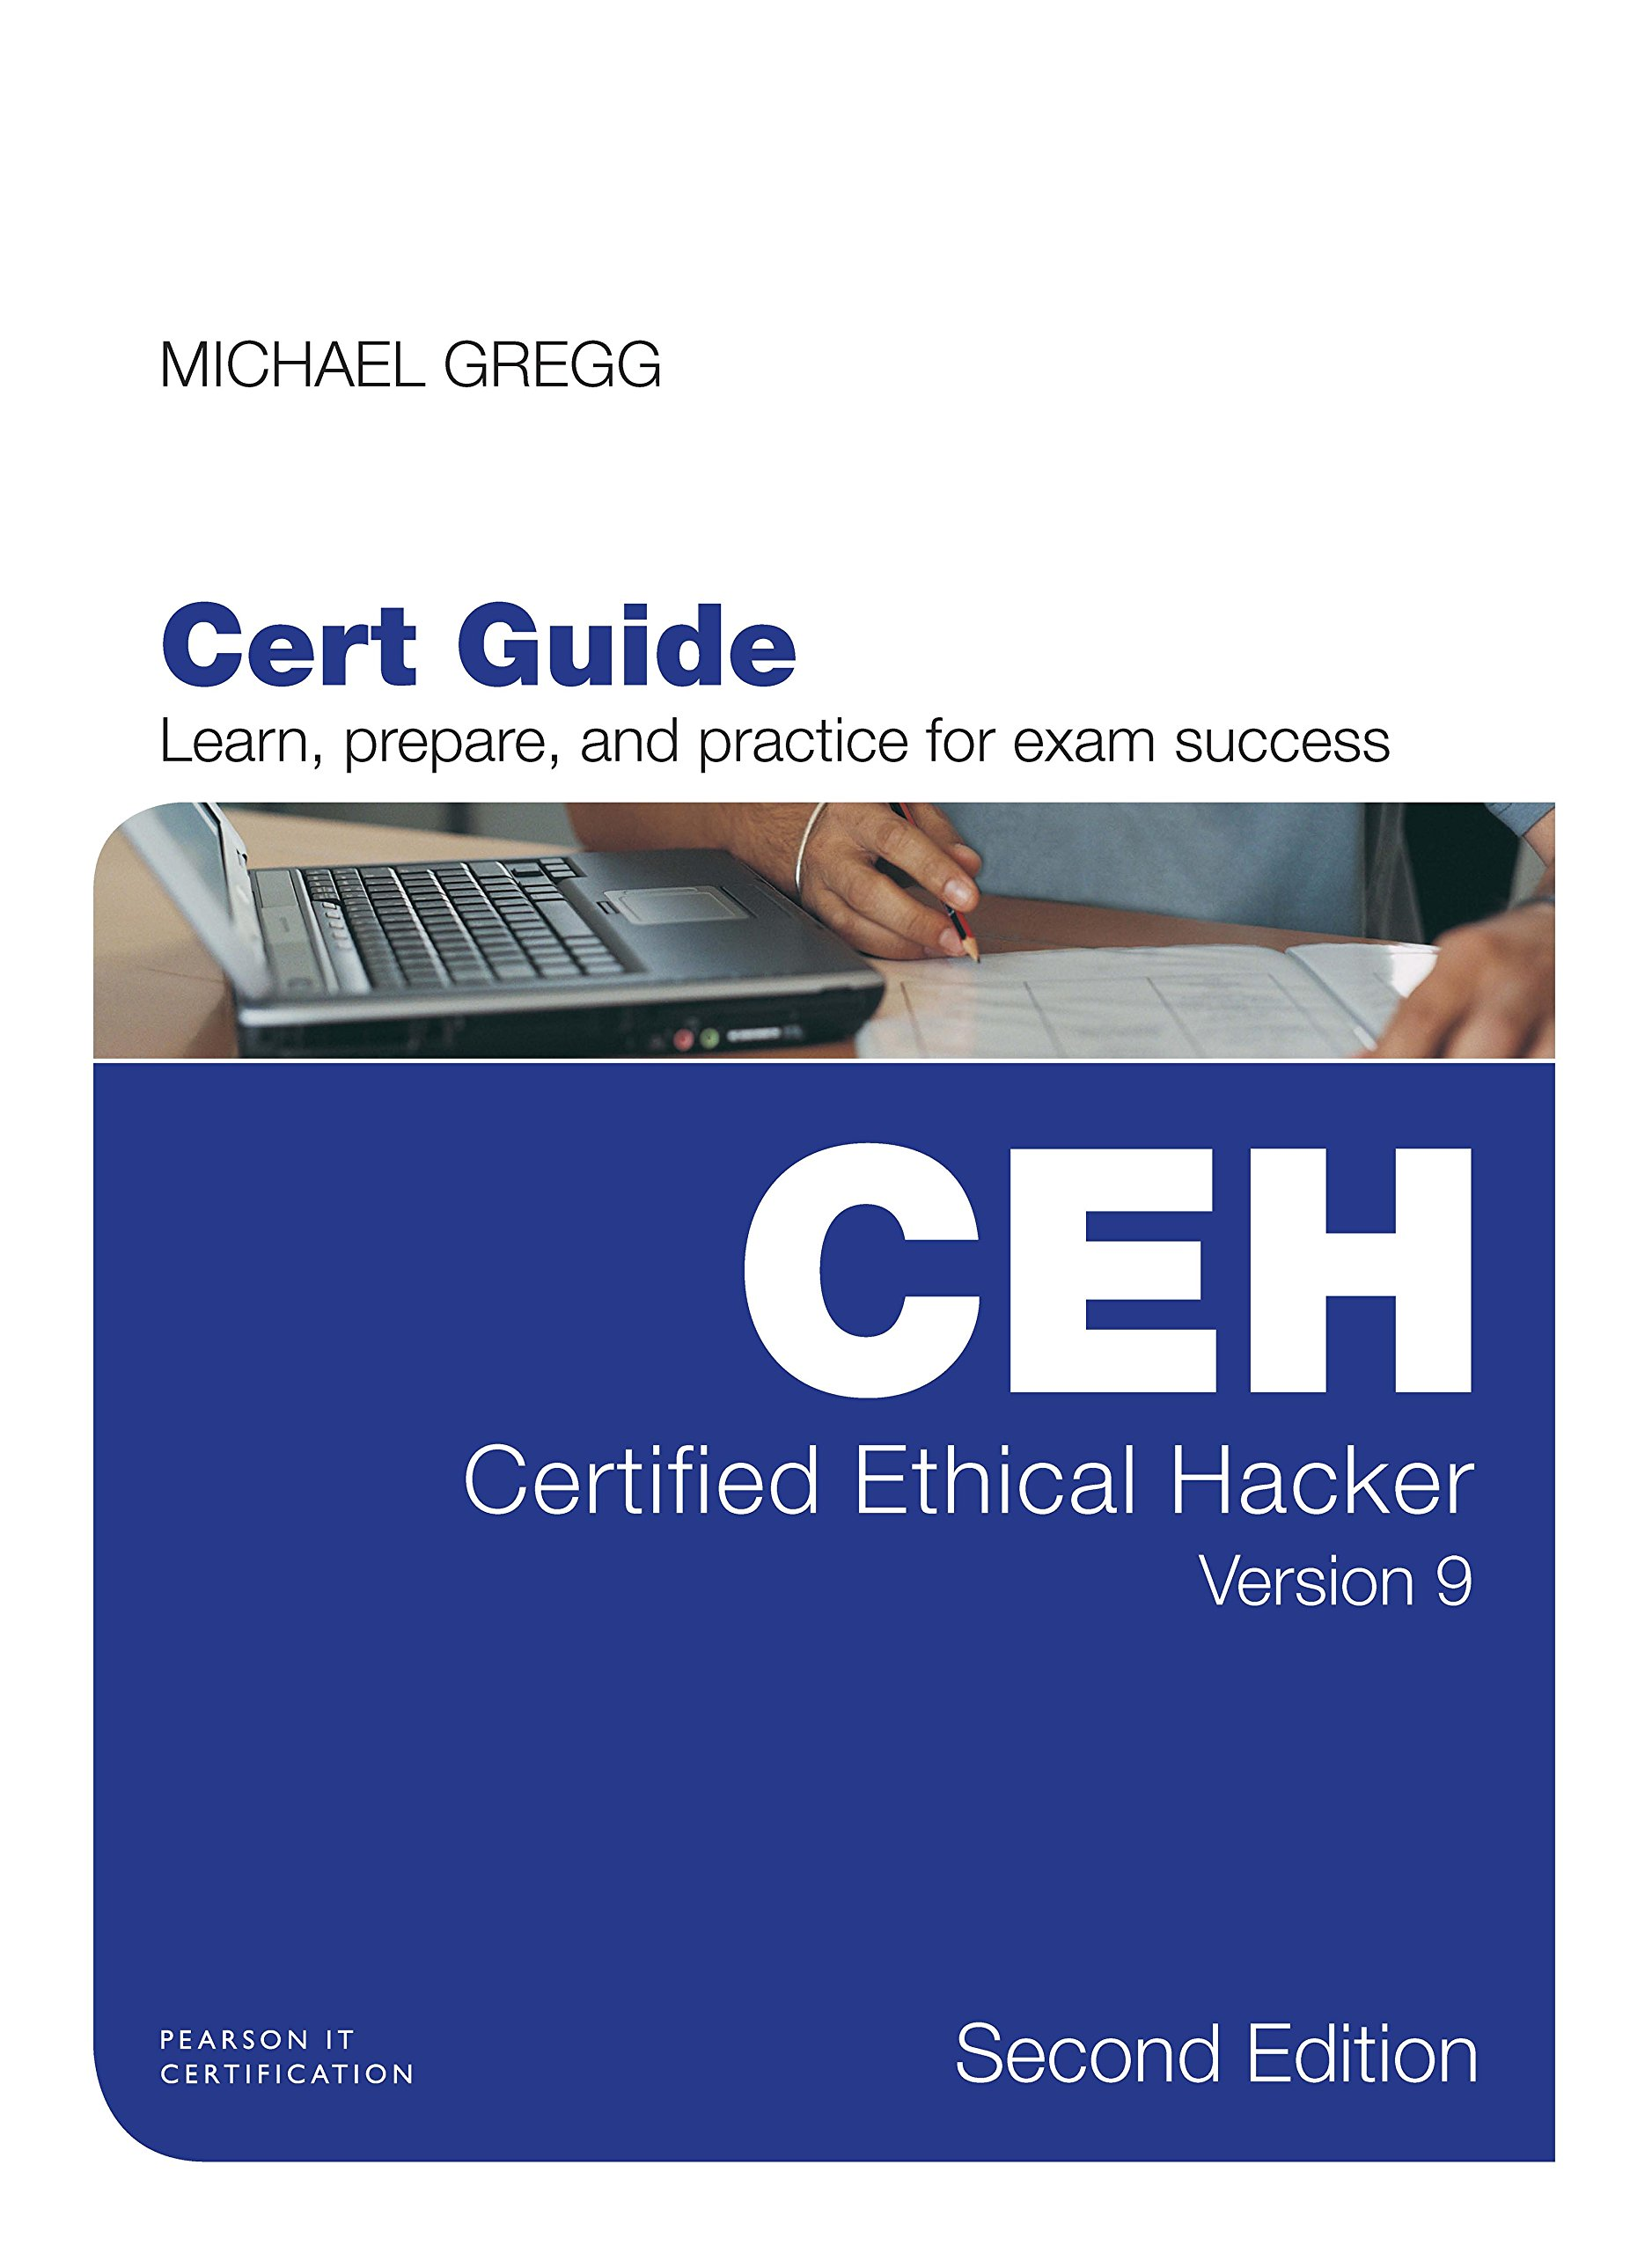 Certified ethical hacker ceh version 9 cert guide certification certified ethical hacker ceh version 9 cert guide certification guide michael gregg 0009386873710 amazon books fandeluxe Images